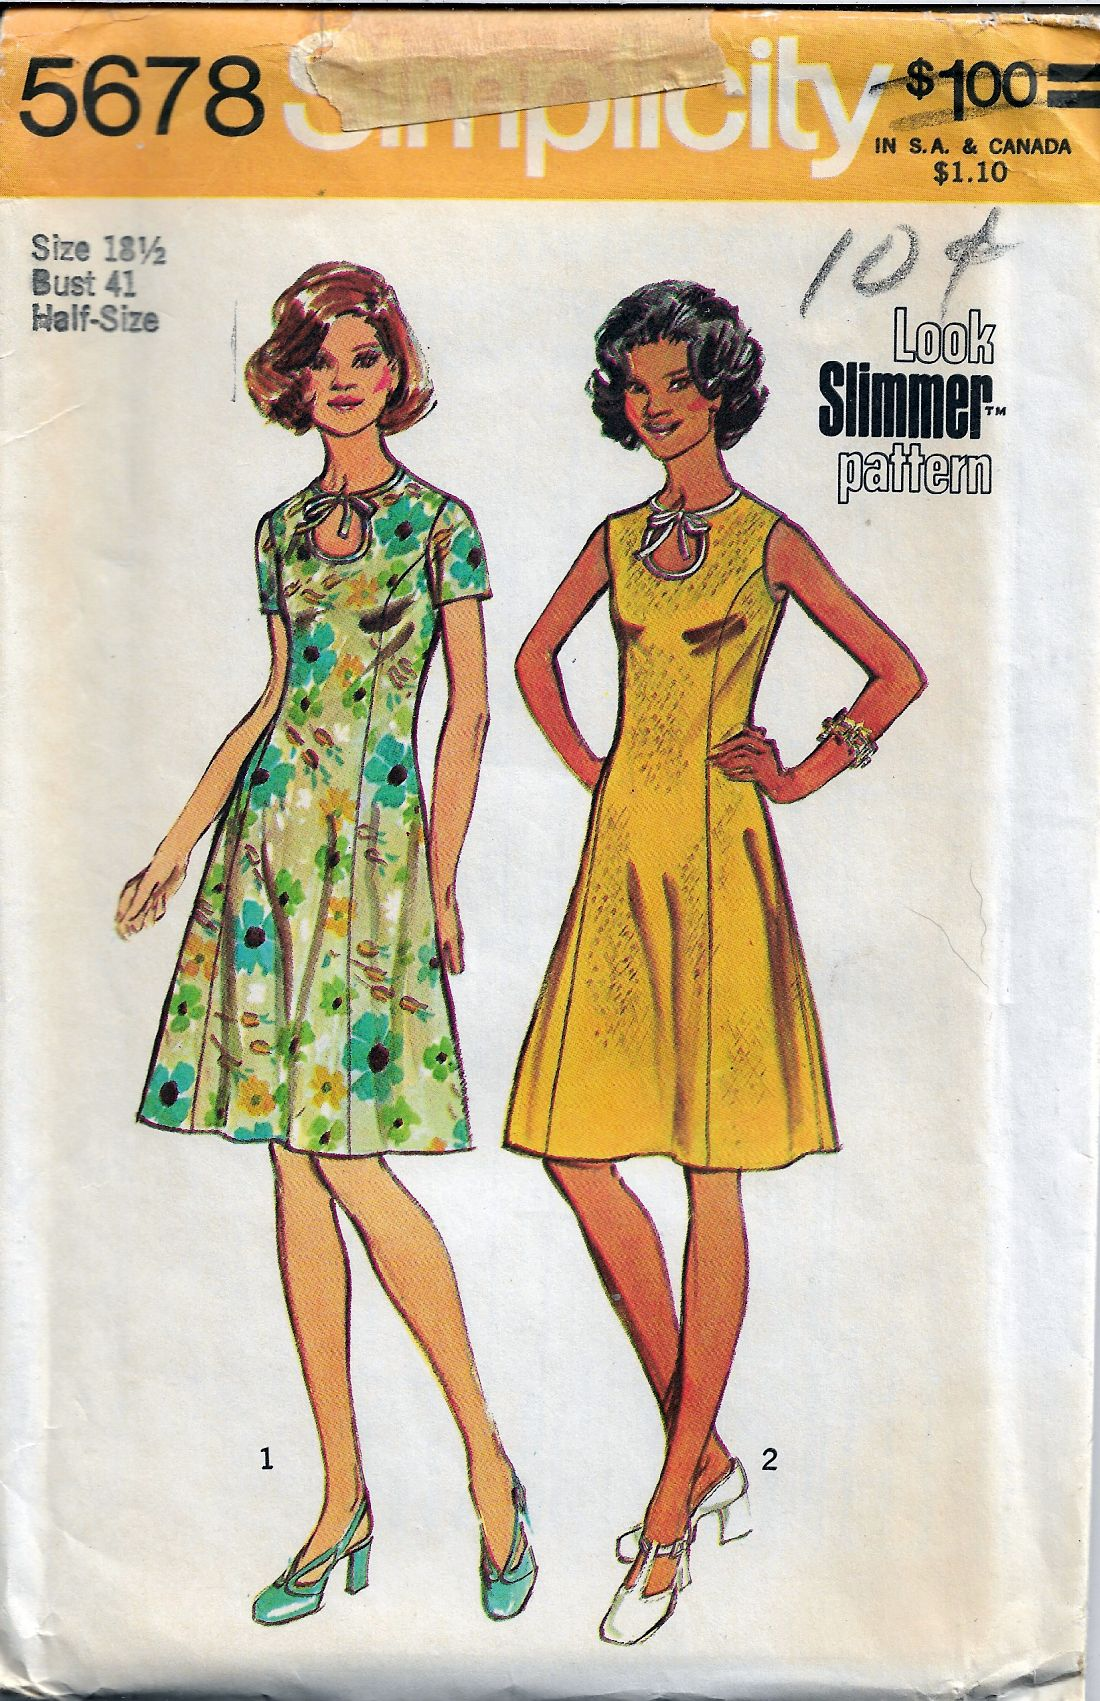 Simplicity 5678 Vintage Sewing Pattern Ladies Dress - VintageStitching - Vintage Sewing Patterns